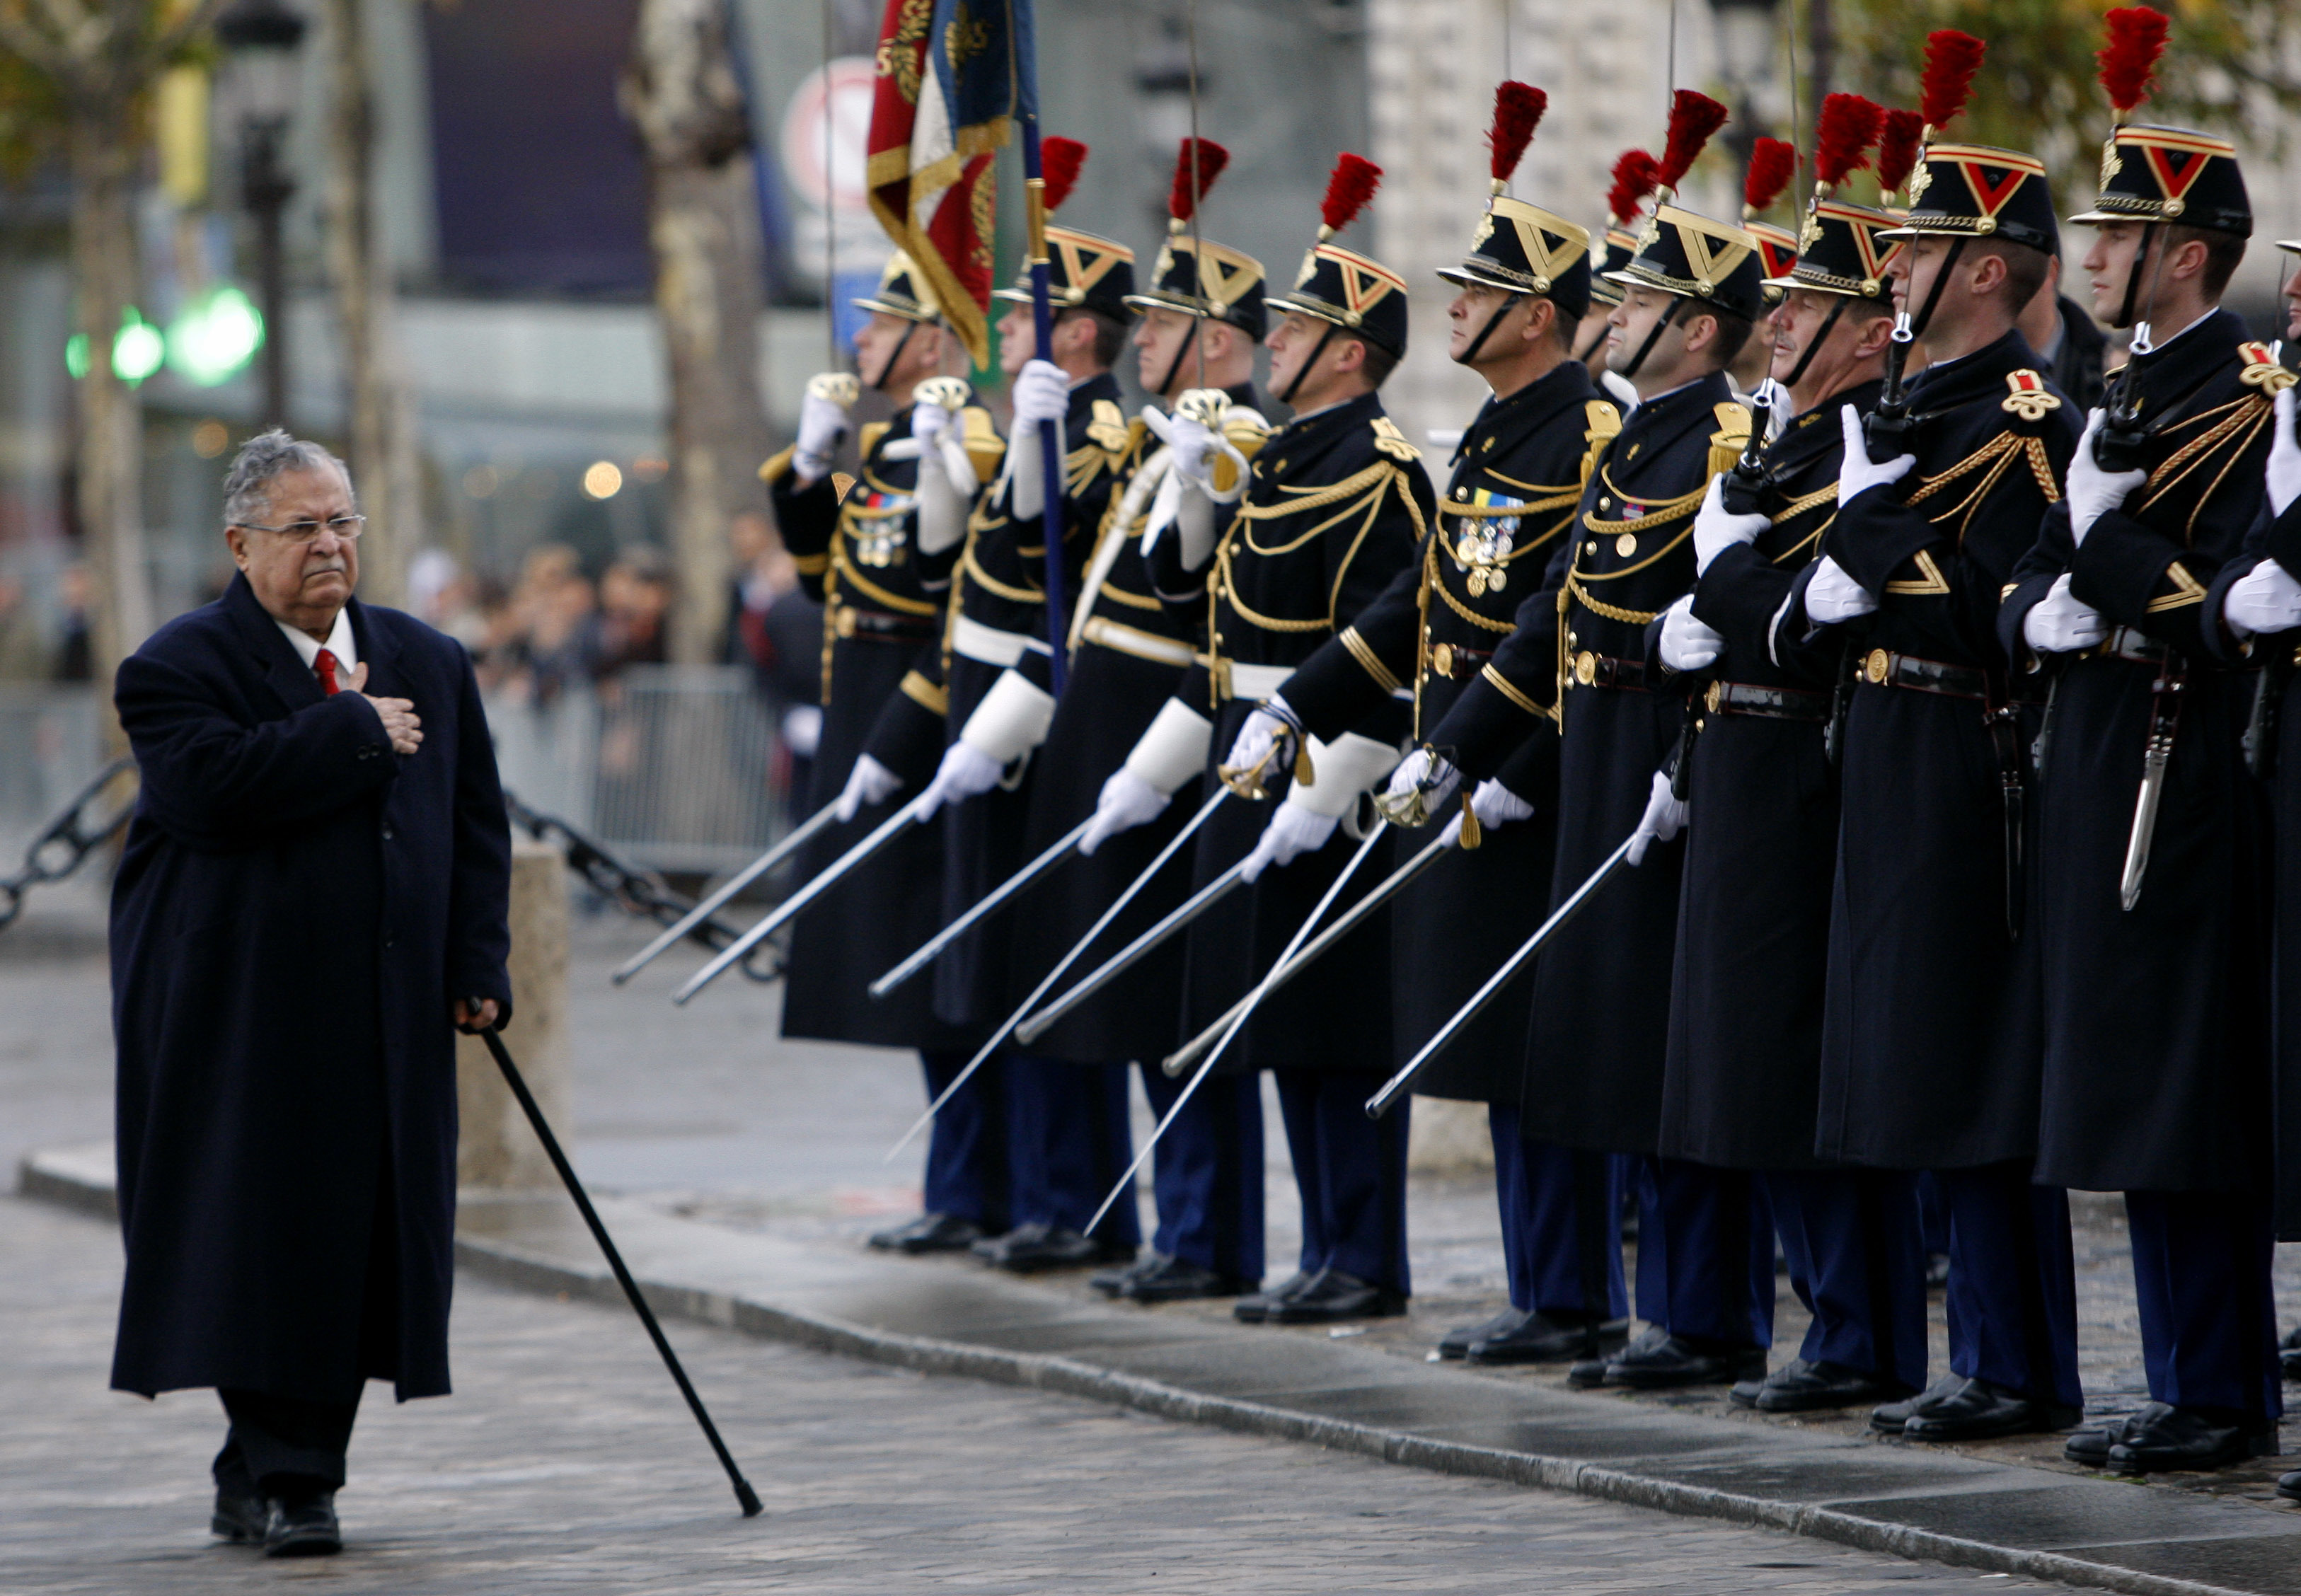 FILE - In this Nov. 17, 2009 file photo, then Iraqi President Jalal Talabani, center, reviews French troops at the Tomb of the Unknown Soldier, in Paris,France. Talabani, a lifelong fighter for Iraq's Kurds who rose to become the country's president, presenting himself as a unifying father figure to temper the potentially explosive hatreds among Kurds, Shiites and Sunnis has died in a Berlin hospital at the age of 83. (AP Photo/Christophe Ena, pool)